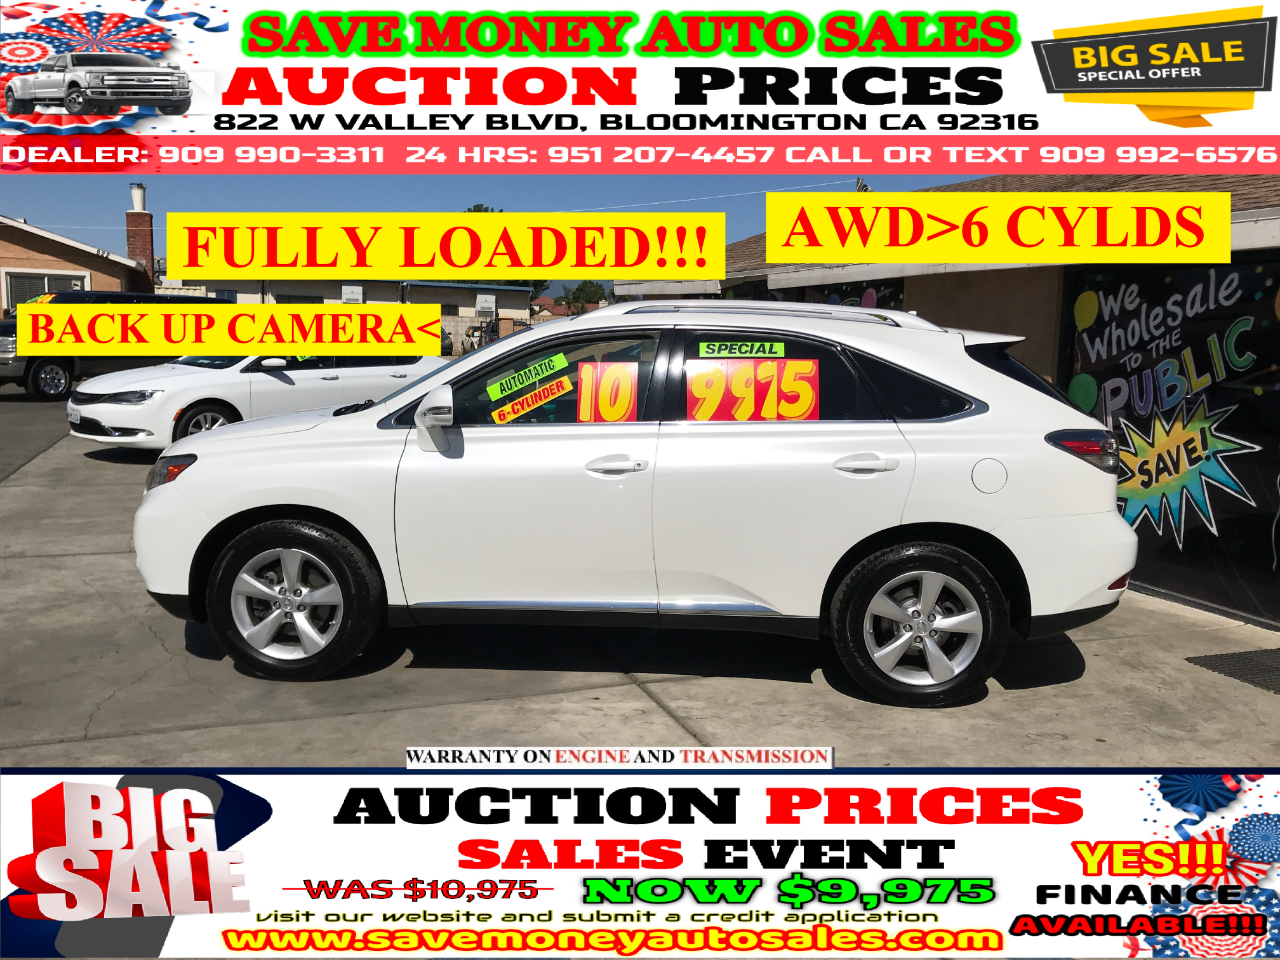 2010 Lexus RX 350 AWD> 6 CYLINDER> LEATHER> SUN ROOF> AUTOMATIC